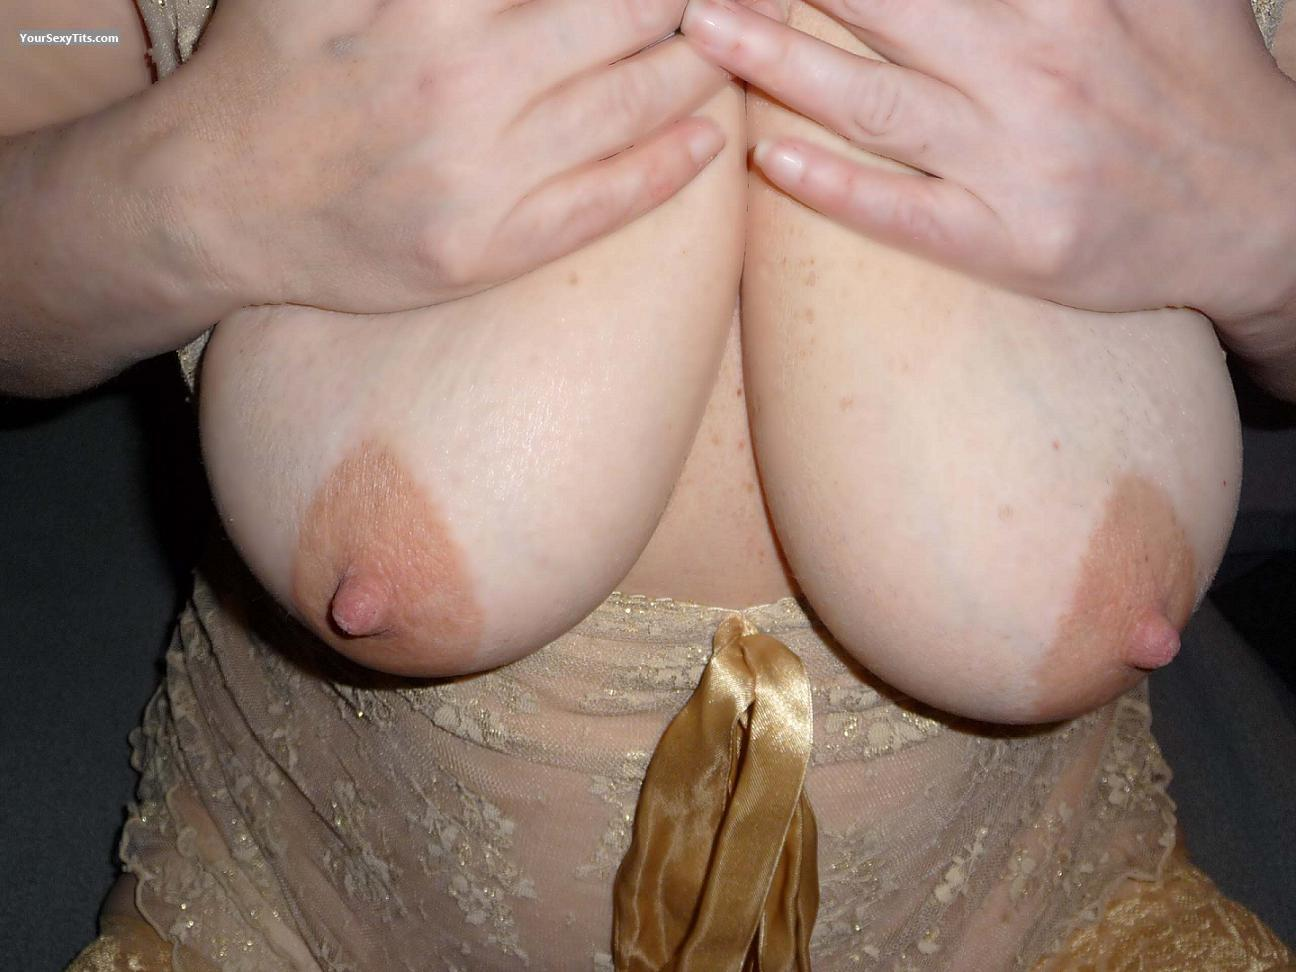 Very big Tits Cumslut